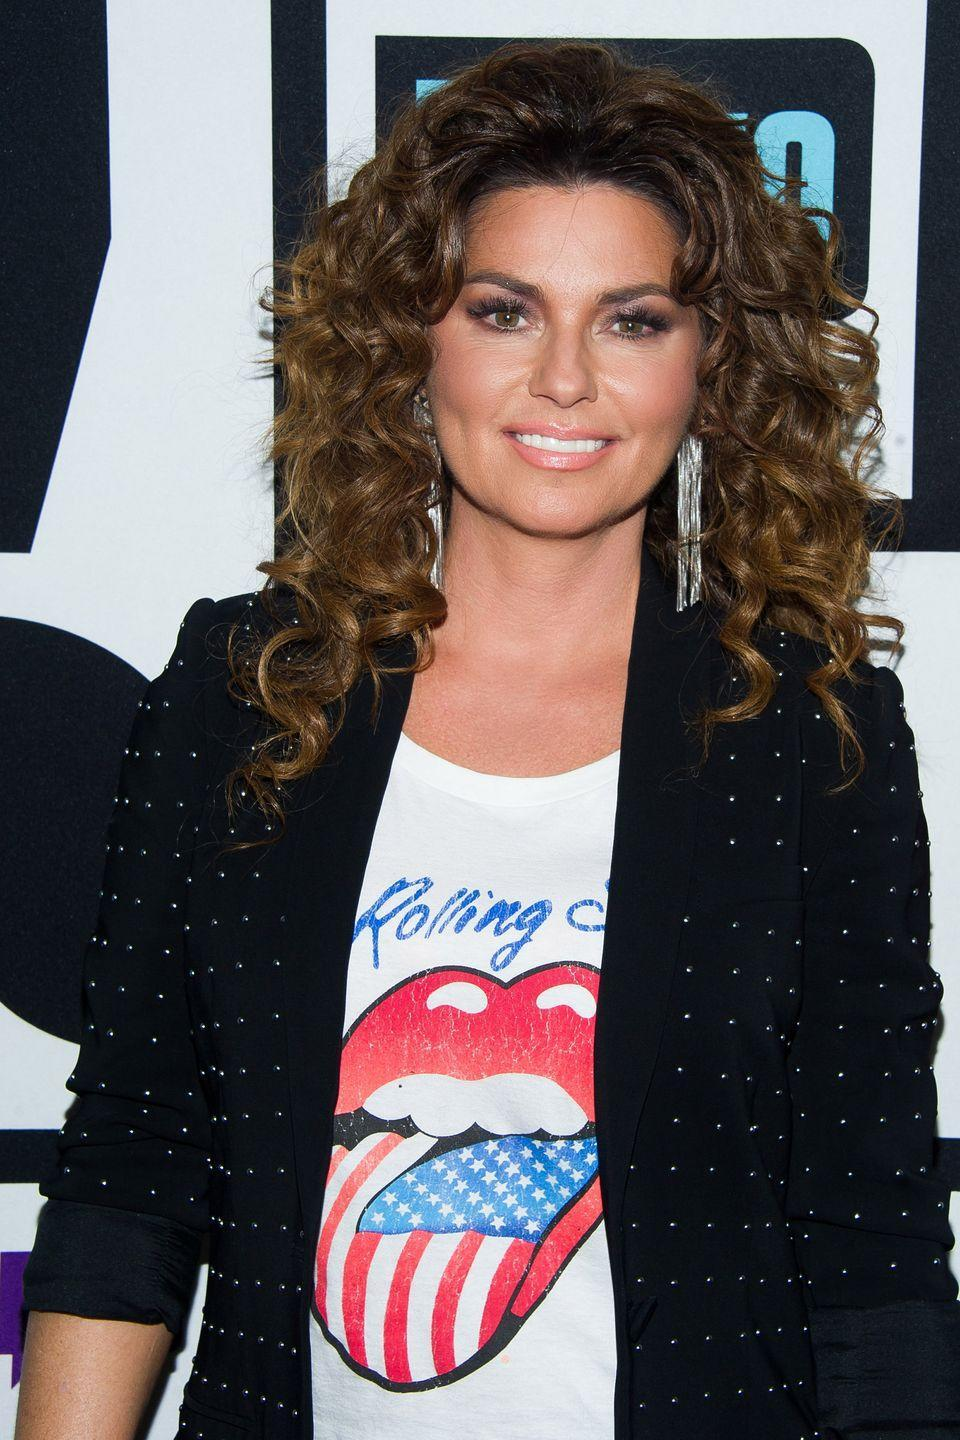 """<p>By night, she was a singer, but by day she was an employee of McDonald's (and a high school student). """"I worked at McDonald's for several years as a teenager after school while singing in bars at night,"""" Shania told <a href=""""https://www.usmagazine.com/celebrity-news/news/shania-twain-25-things-you-dont-know-about-me-w506333/"""" rel=""""nofollow noopener"""" target=""""_blank"""" data-ylk=""""slk:Us Weekly"""" class=""""link rapid-noclick-resp""""><em>Us Weekly</em></a>.</p>"""